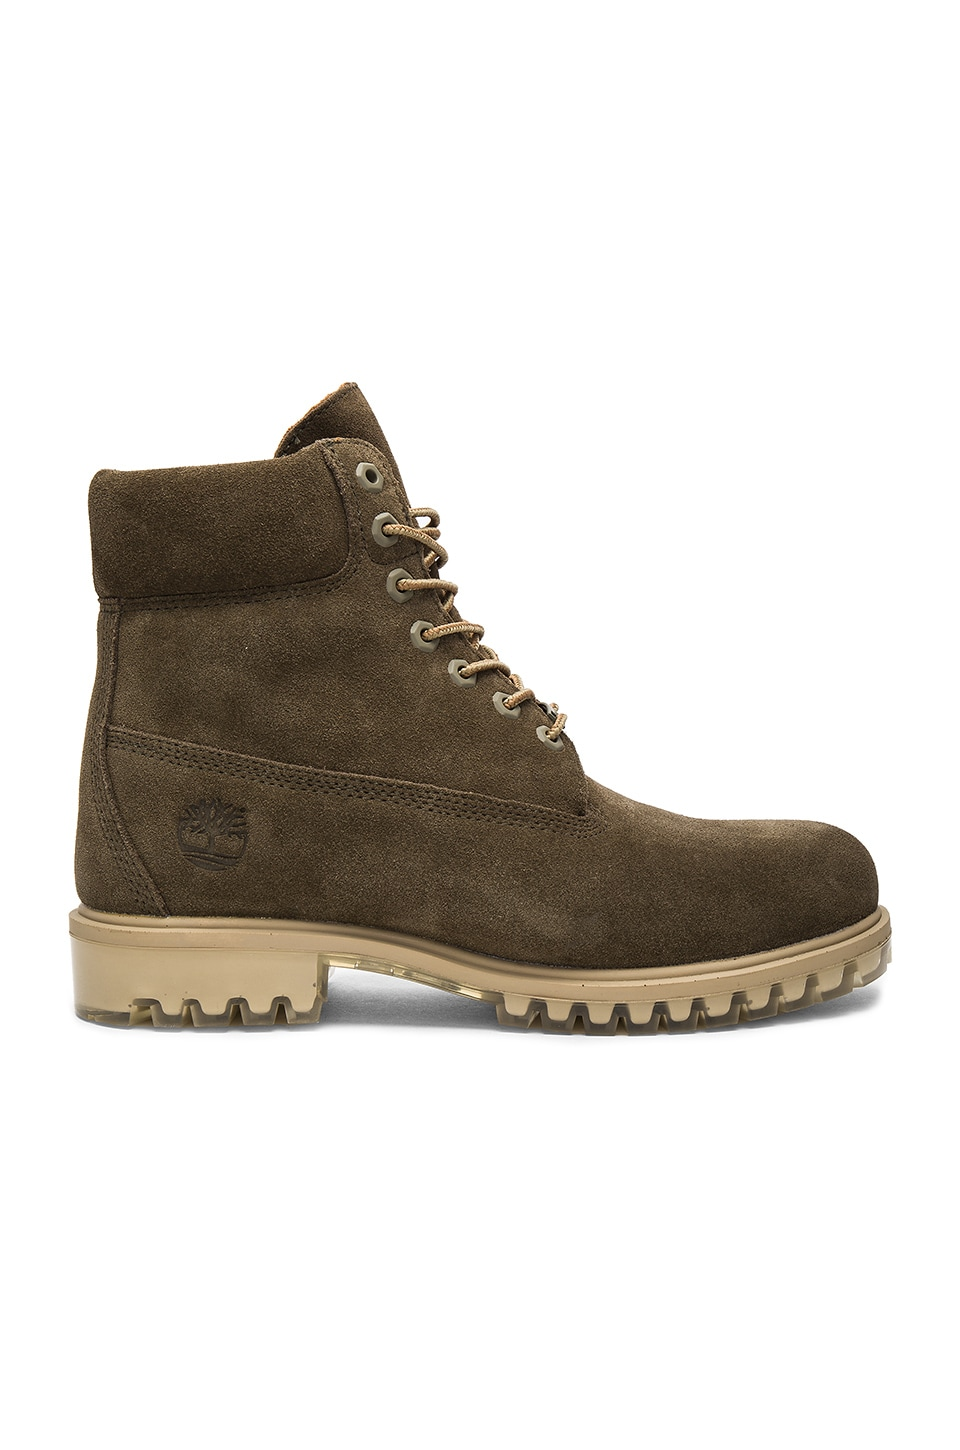 6″ Premium Boot Autumn Leaf by Timberland